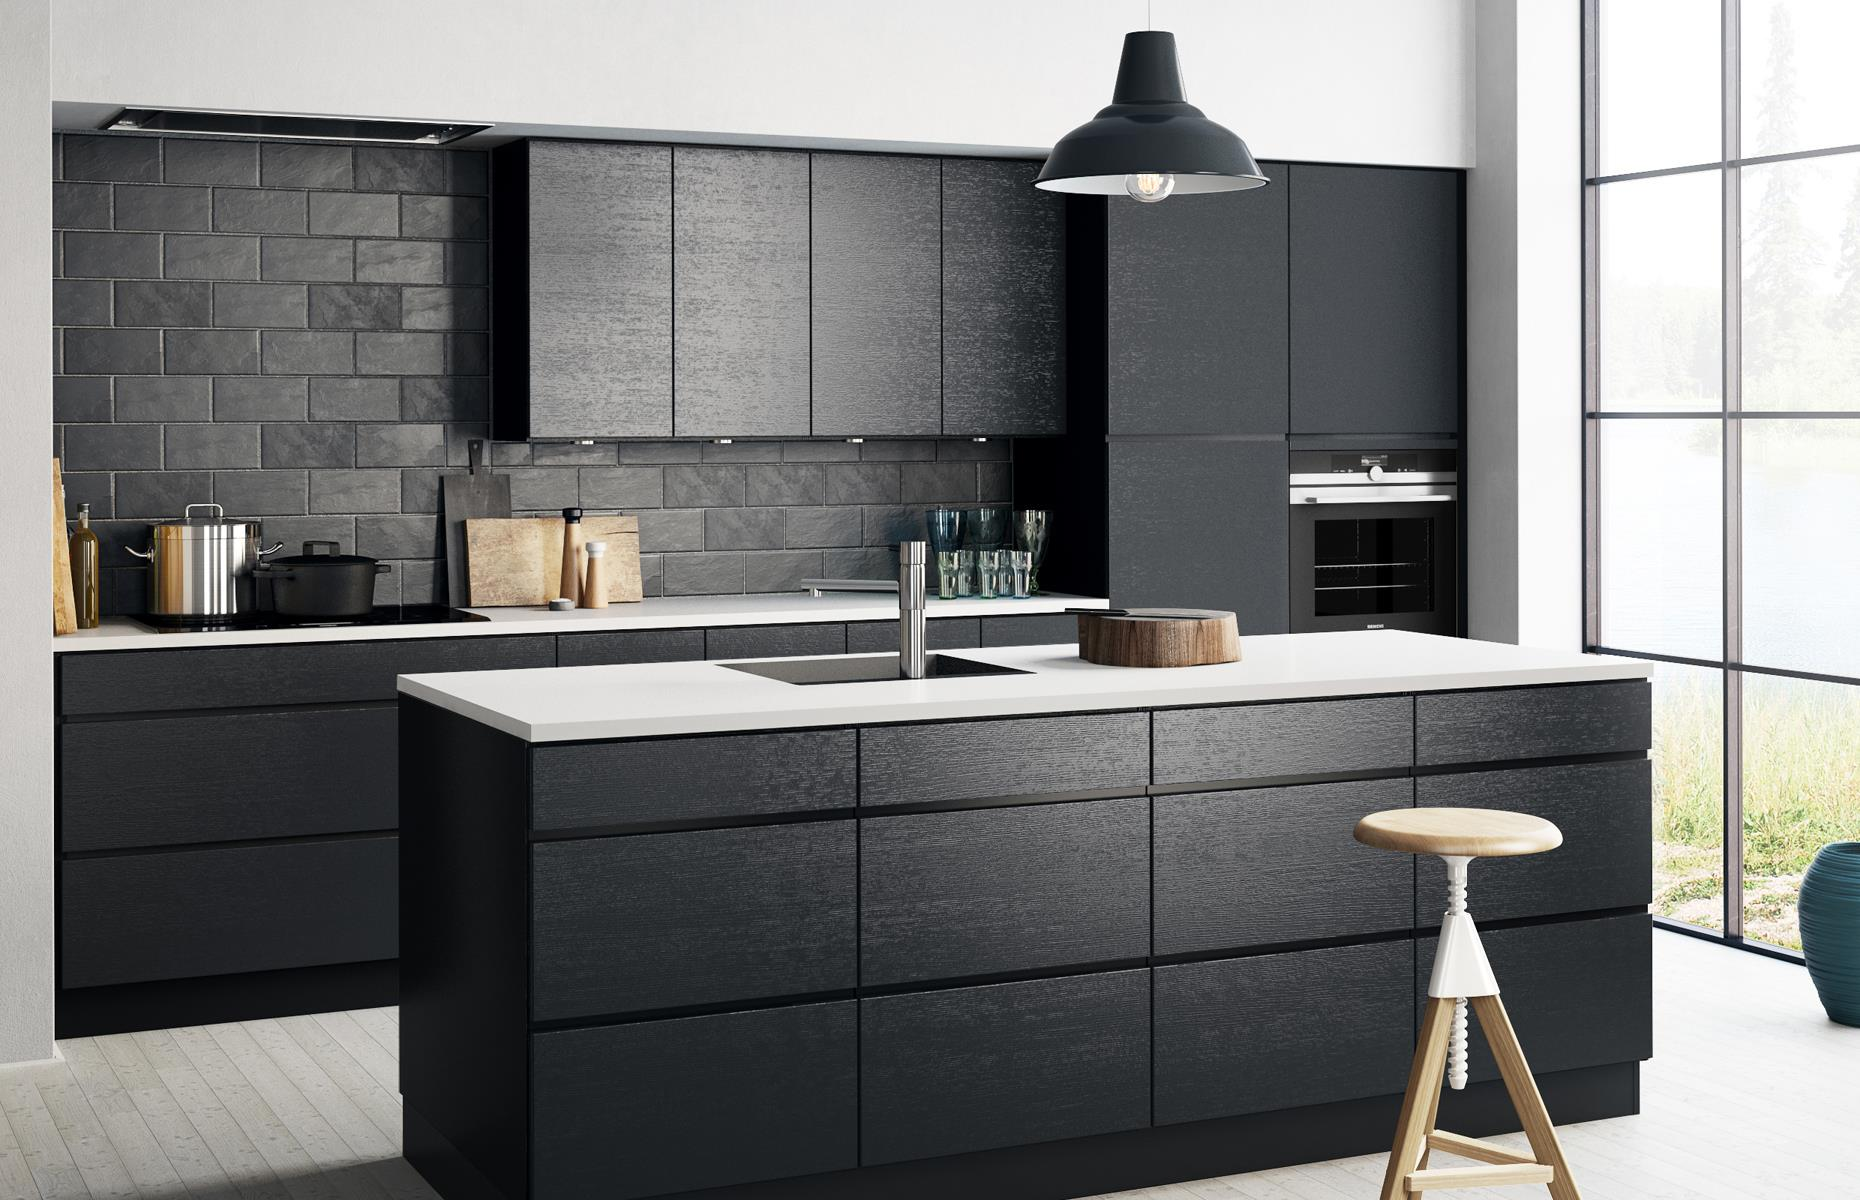 Dark Kitchens: Black, Navy And Dark Grey Kitchen Ideas | Loveproperty.com